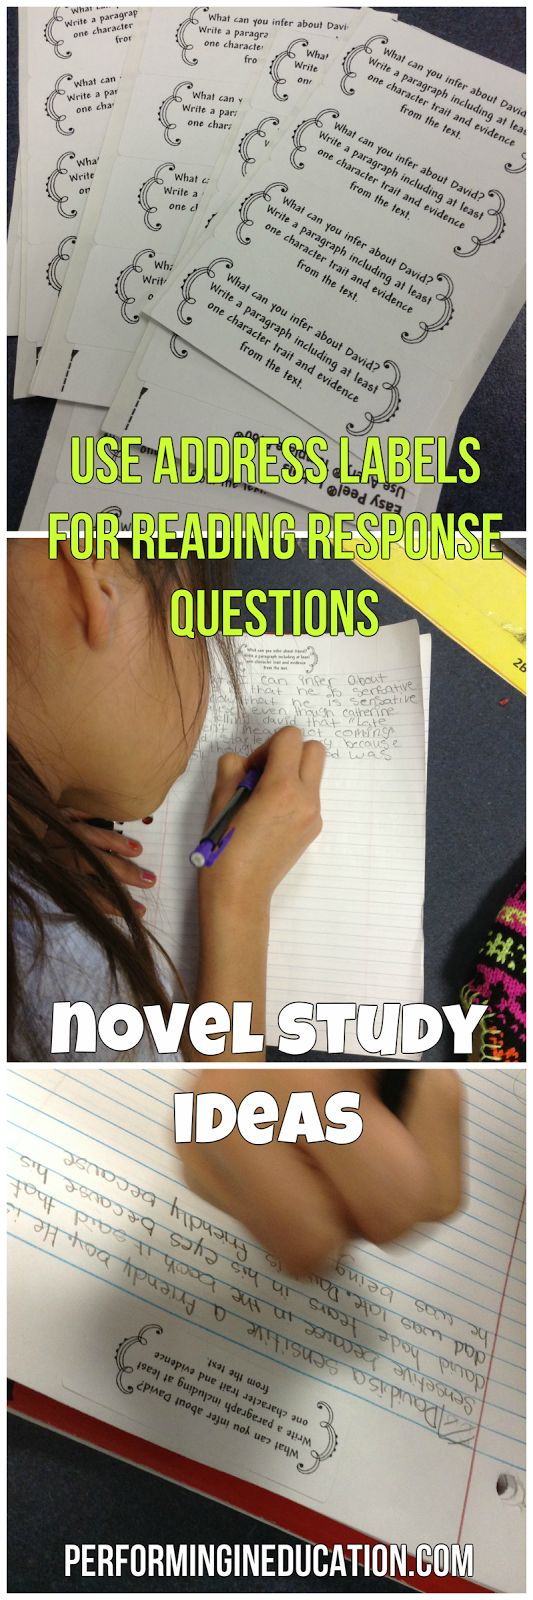 Performing in Education: Using novels in the classroom: Character Trait & Textual Evidence Lesson